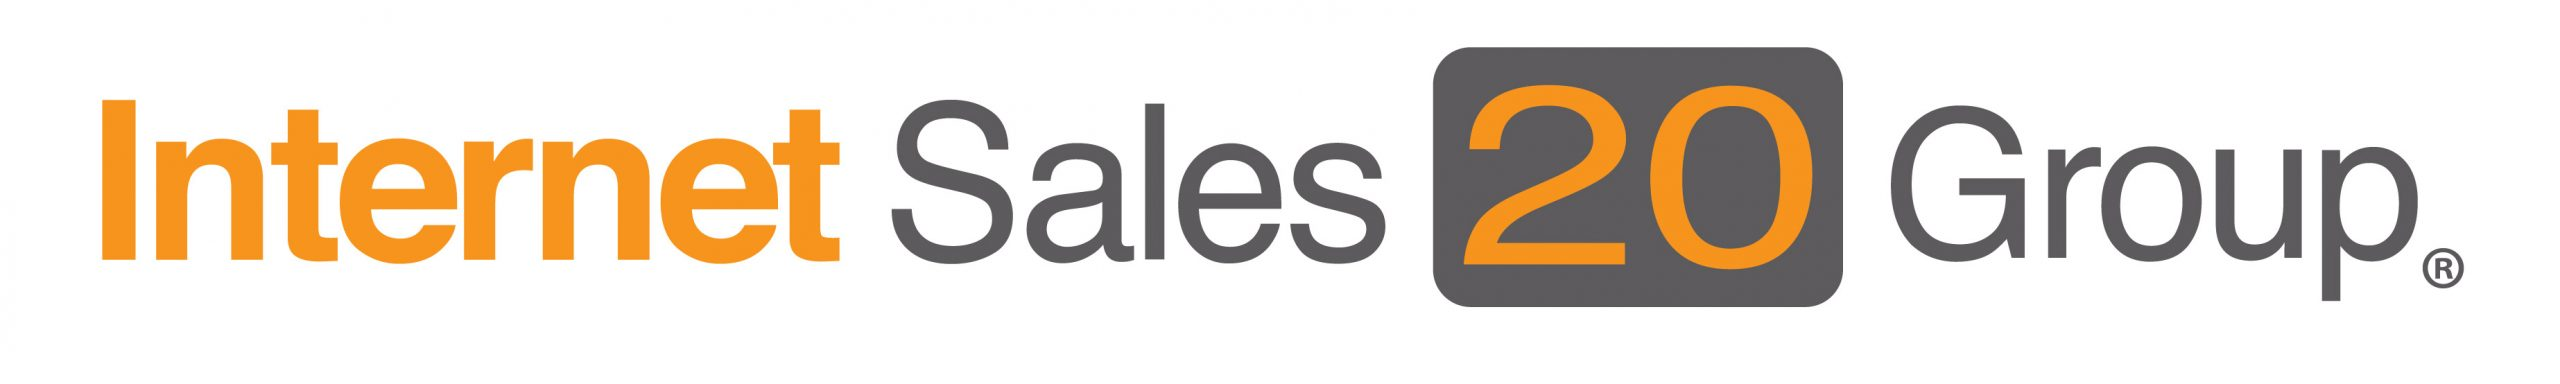 Internet Sales 20 Group Logo